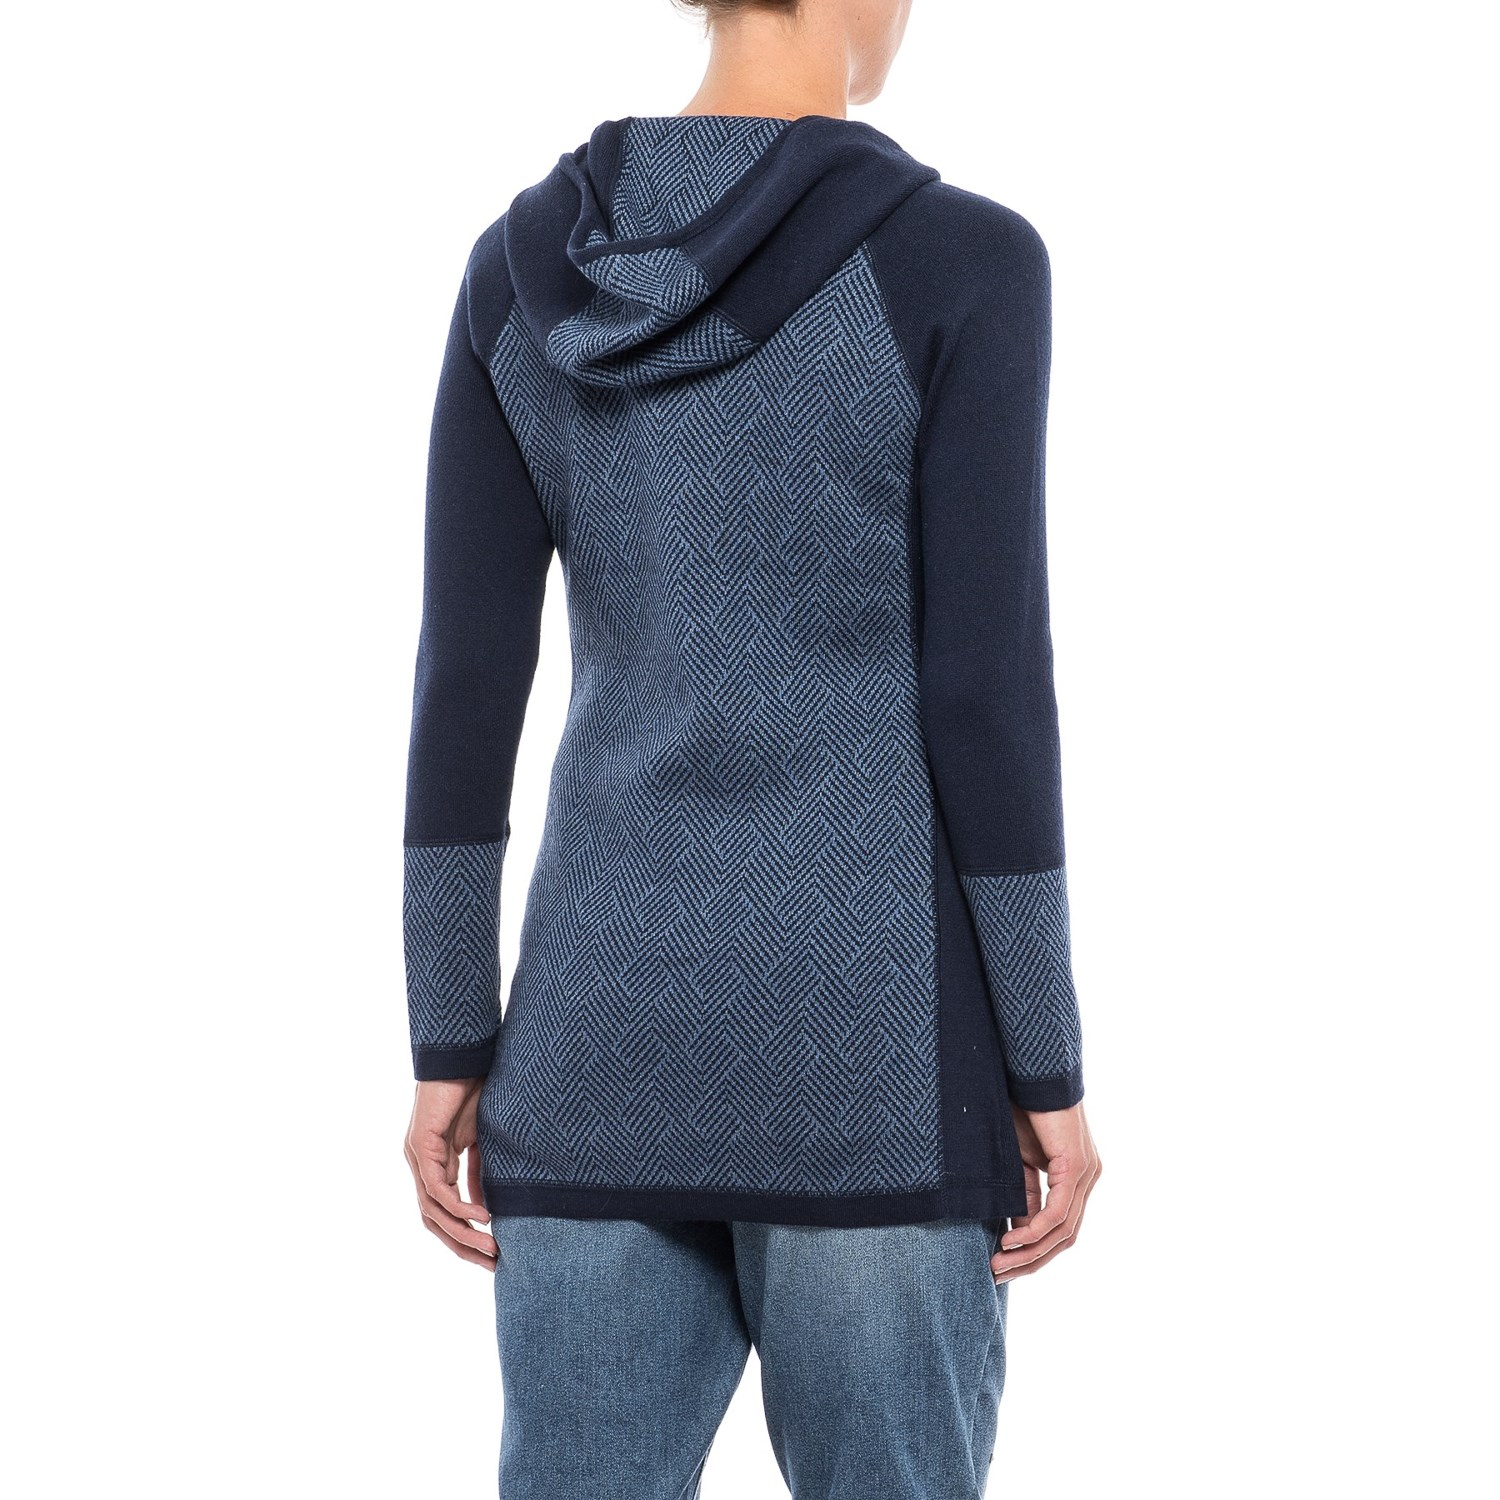 Cynthia Rowley Hooded Cardigan Sweater For Women Save 31